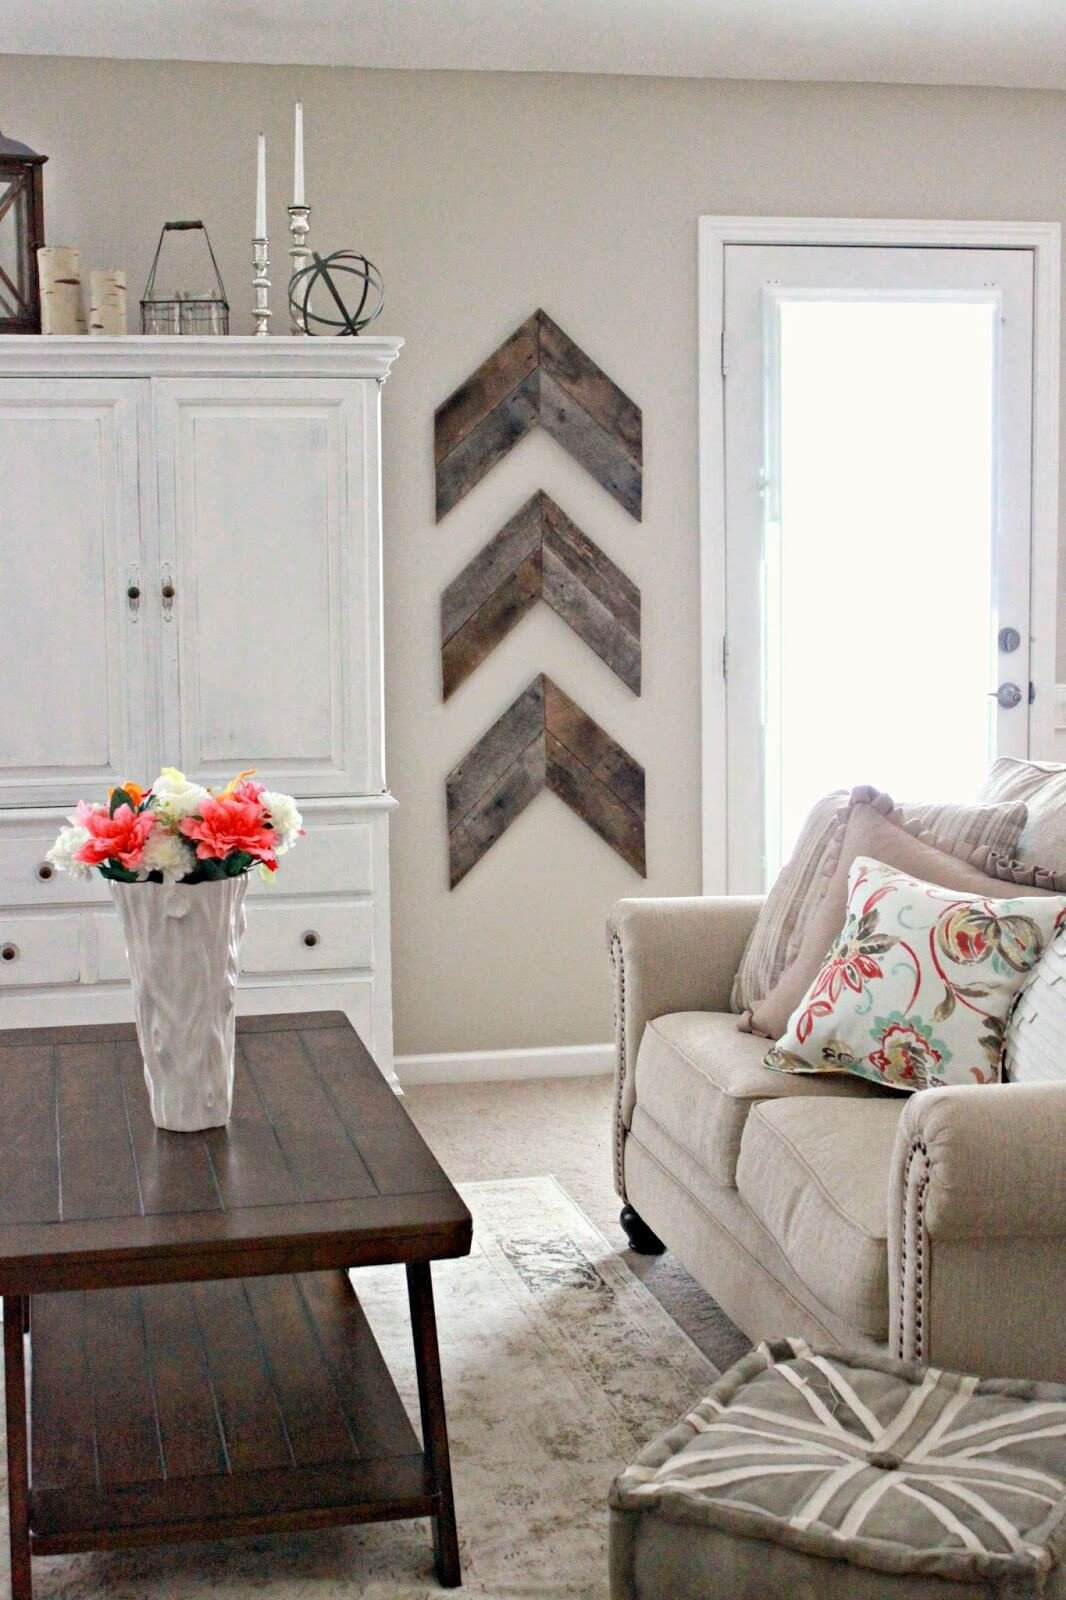 Wall Decor for Living Room Inspirational 35 Best Farmhouse Living Room Decor Ideas and Designs for 2017